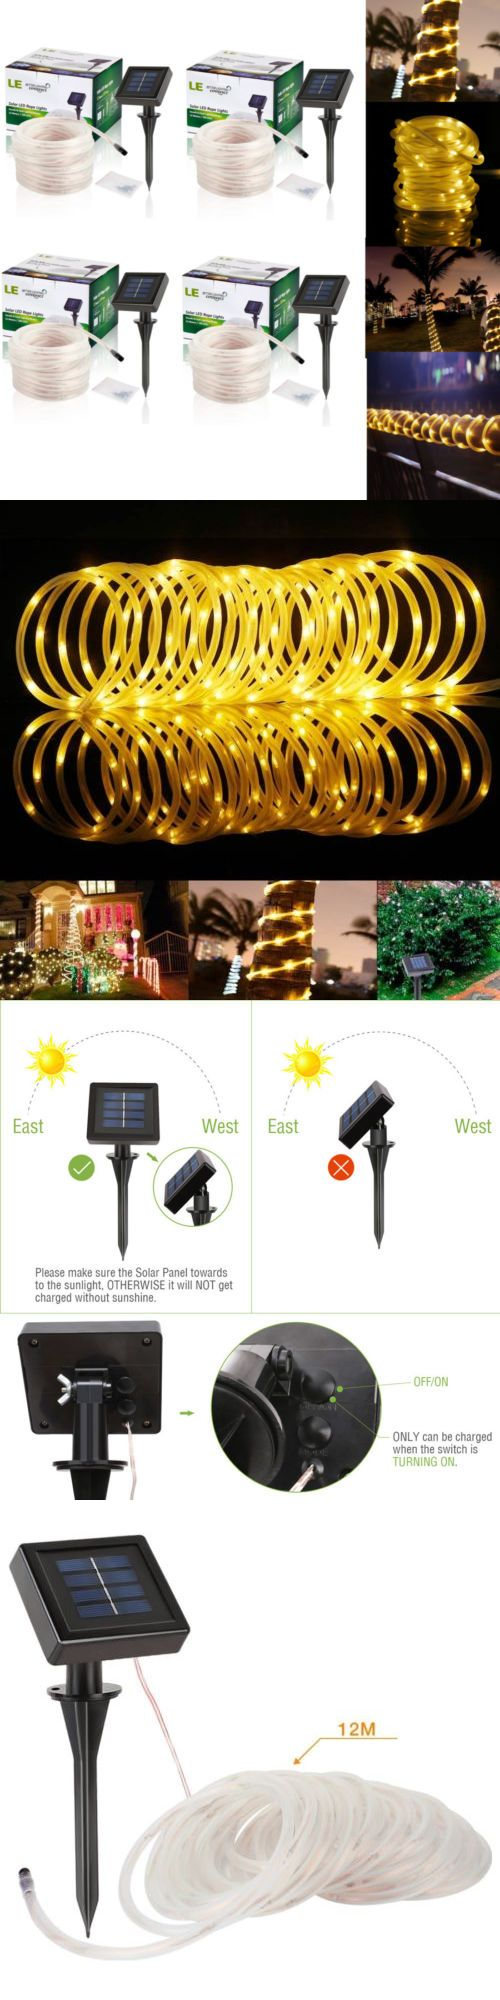 String Lights Fairy Lights 116022: 4 X Le Solar Power Rope Lights Warm White Waterproof 33Ft 100 Leds String Light -> BUY IT NOW ONLY: $47.95 on eBay!